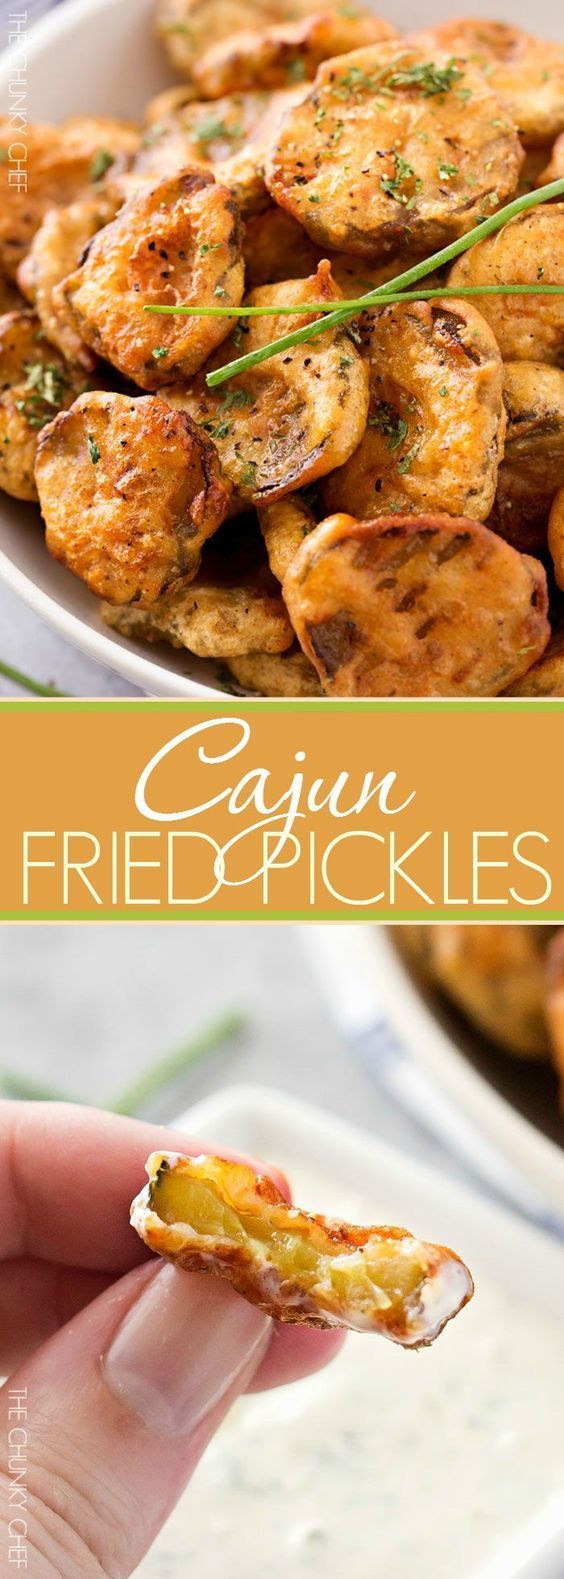 Cajun Fried Pickles with Garlic Blue Cheese Dip | Dill pickles are soaked in a Cajun buttermilk batter, fried until crispy, then dipped in a mouthwatering garlic blue cheese dipping sauce! | http://thechunkychef.com